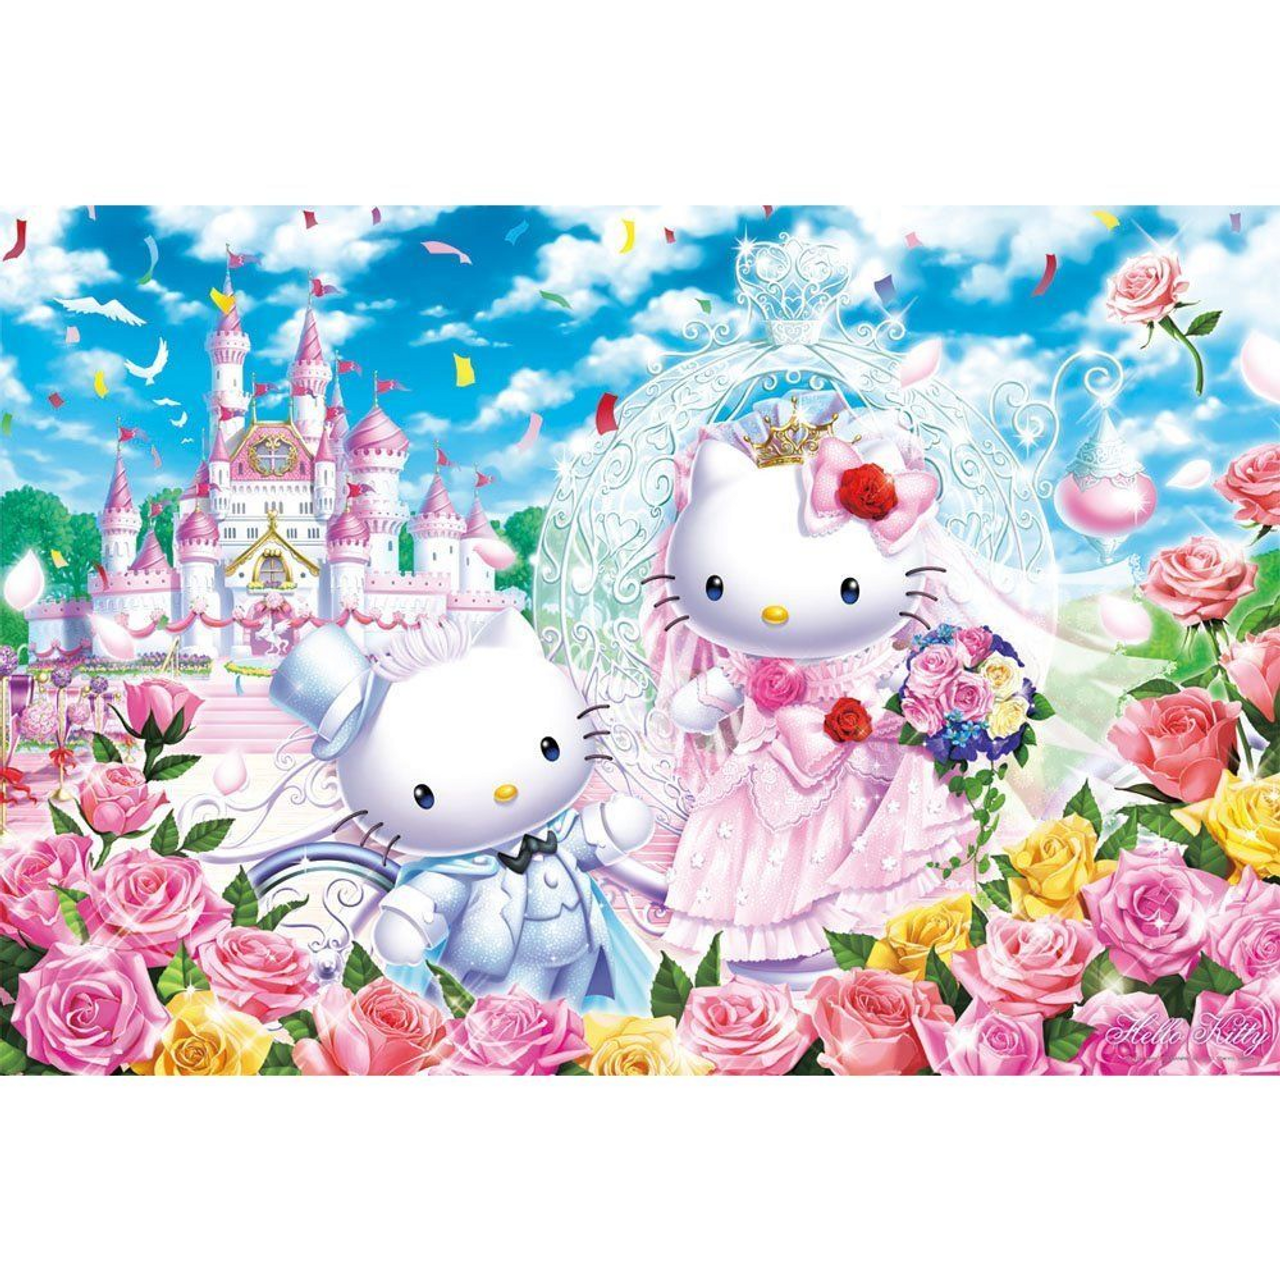 Jigsaw Puzzle 1000 Pieces Sanrio Hello Kitty Candy Shop Japan F//S